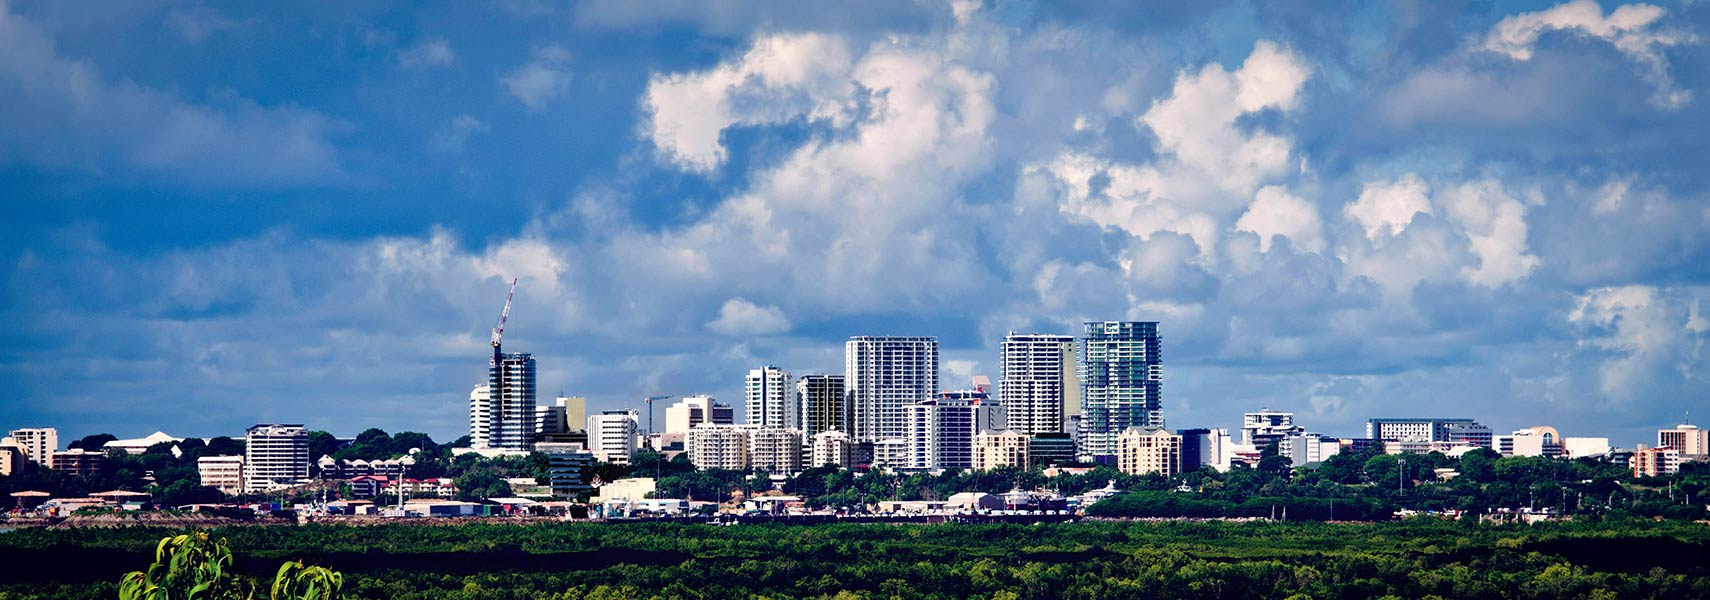 Skyline of Darwin's Central Business District, Australia